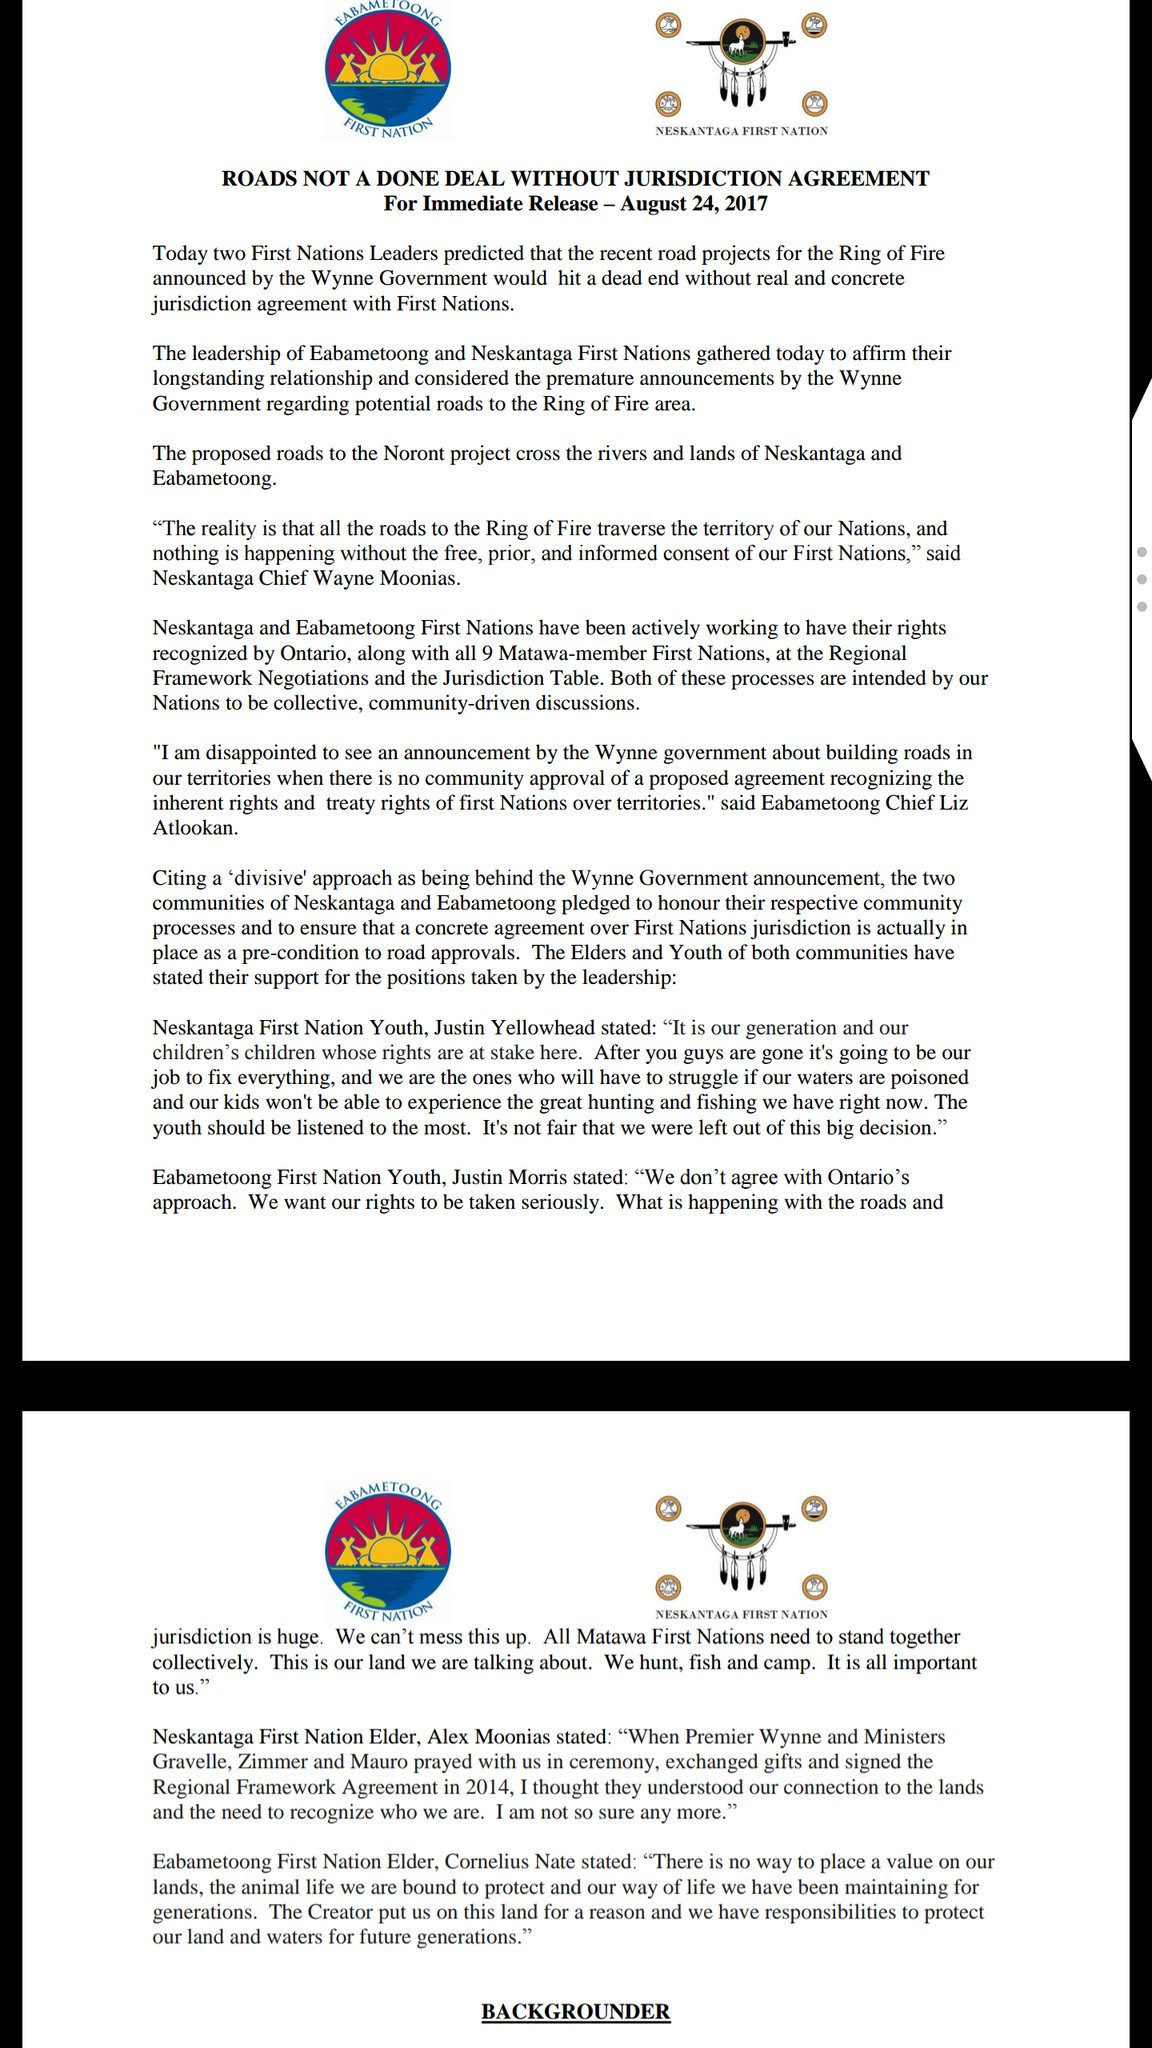 Dennis Ward On Twitter Two First Nations Leaders Predict Ring Of